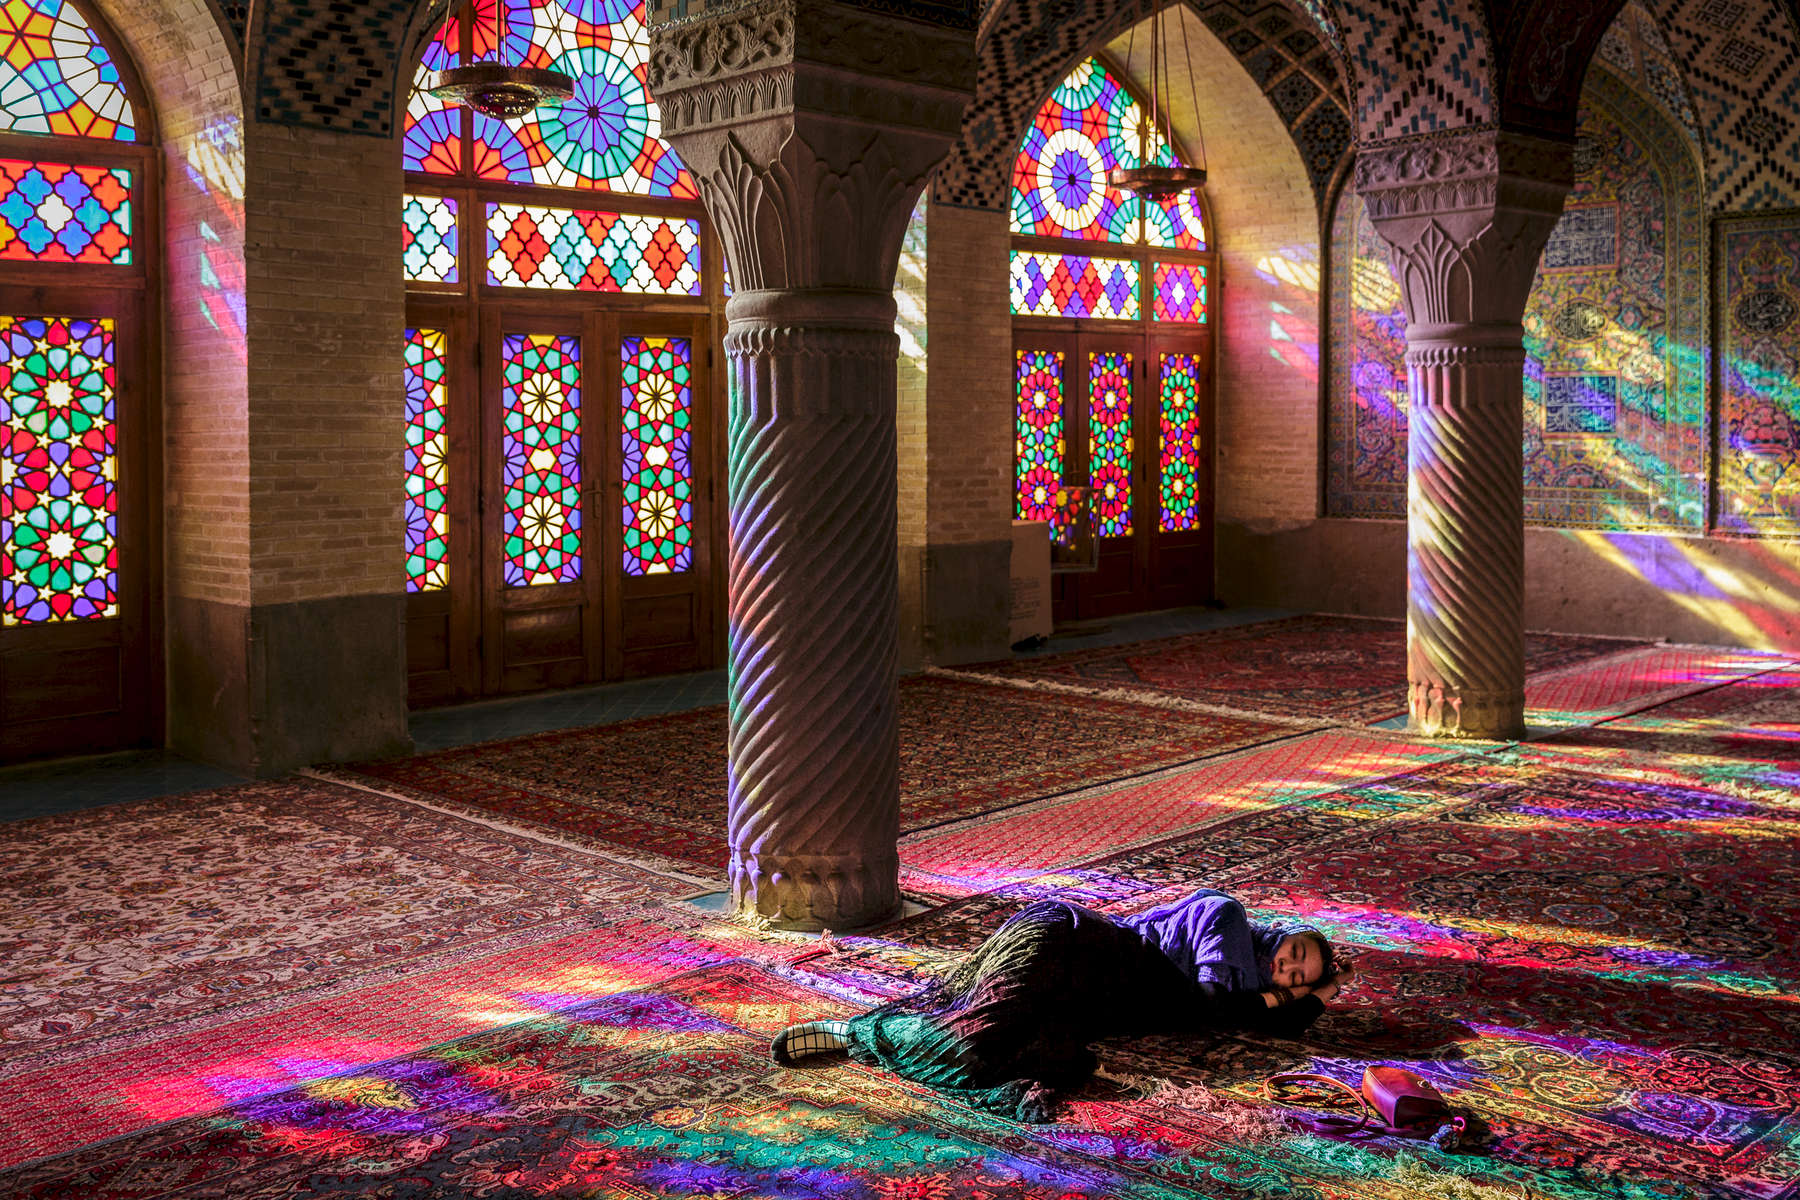 A tourist enjoying a quiet moment in Nasīr al-Mulk Mosque, Shiraz.  Th exterior of the mosque was completed in1888. The Mosque is famous for the early morning light cast through its ornate stained glass windows.